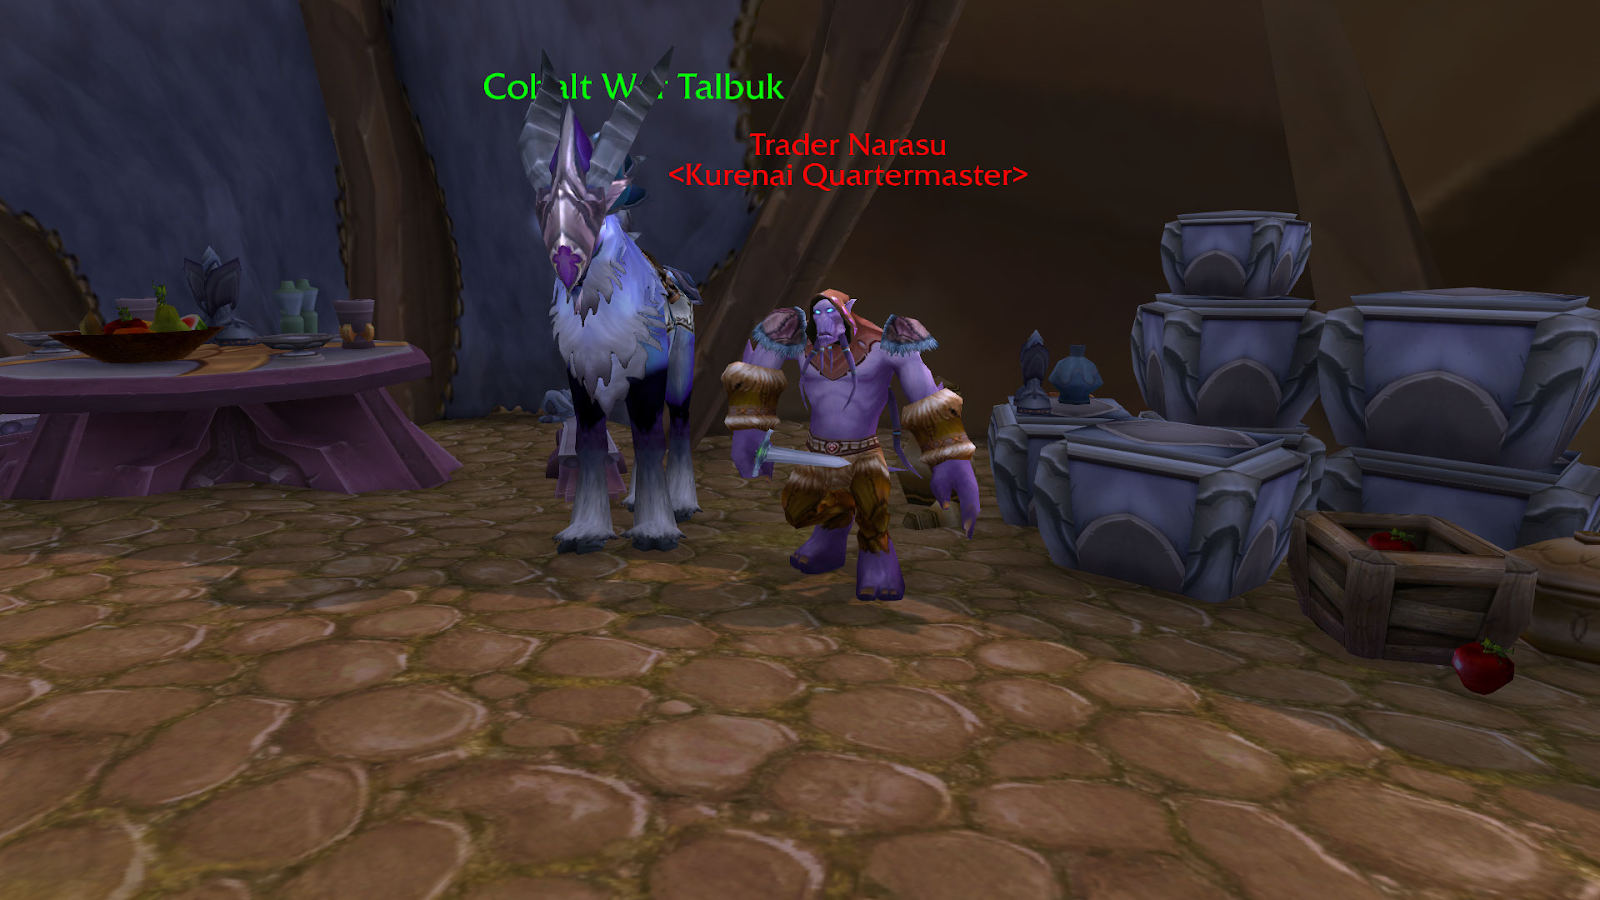 Alliance vendor who sells the Cobalt Riding Talbuk at Exalted